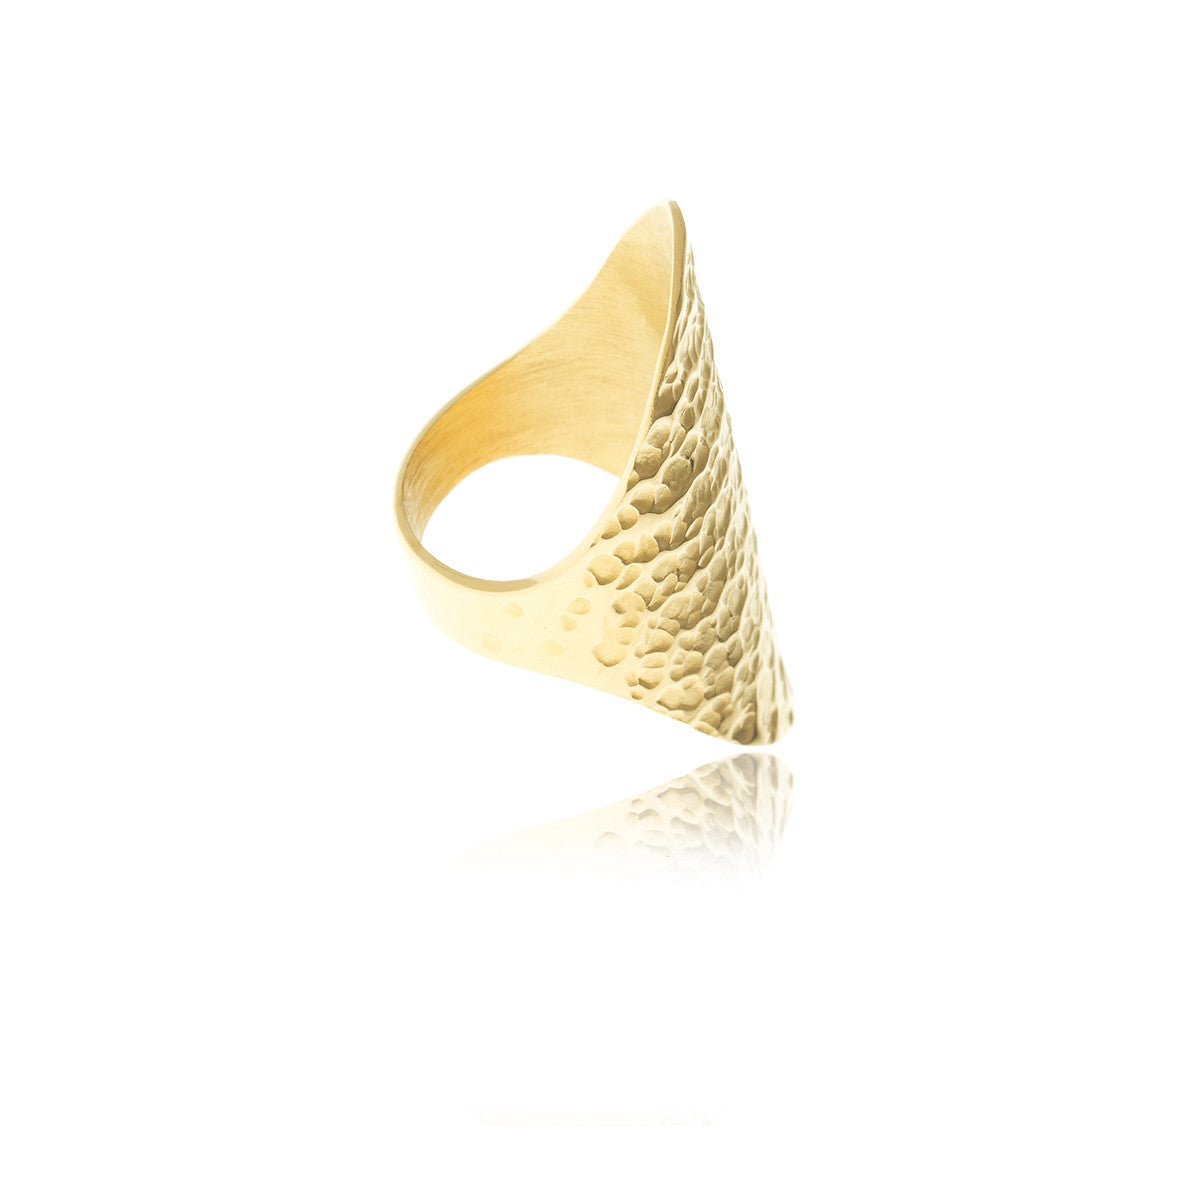 Sidereal Gold Hammered Ring - MCK Brands